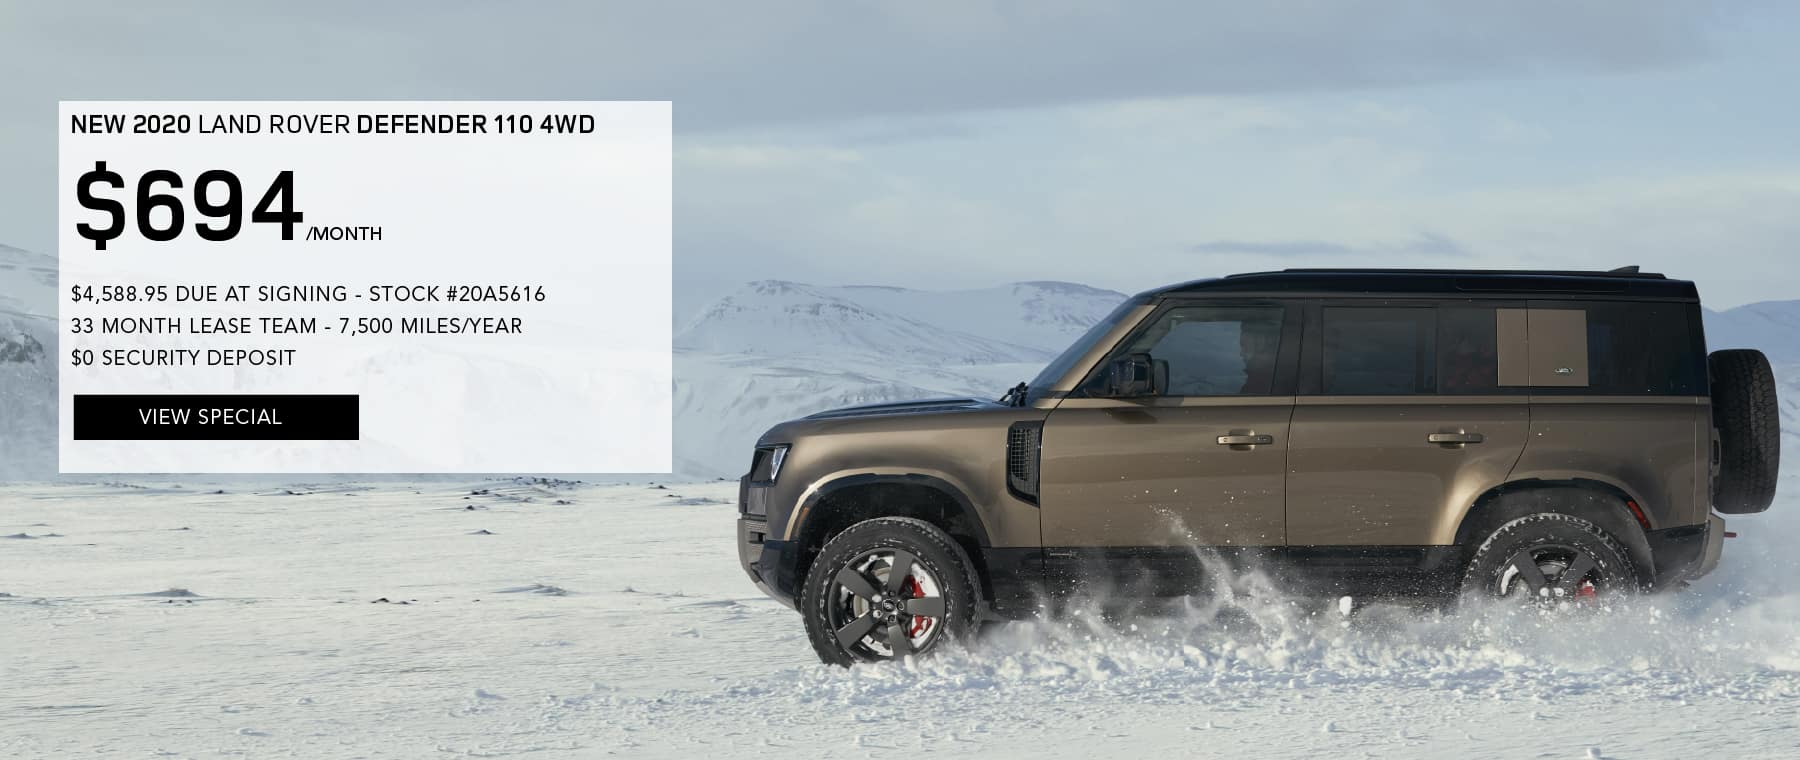 NEW 2020 LAND ROVER DEFENDER 110. $694 PER MONTH FOR 33 MONTHS. $4,588.95 DUE AT SIGNING. STOCK #20A5616. 7,500 MILES/YEAR. $0 SECURITY DEPOSIT. VIEW SPECIAL. BROWN LAND ROVER DEFENDER DRIVING DOWN ROAD IN SNOW.